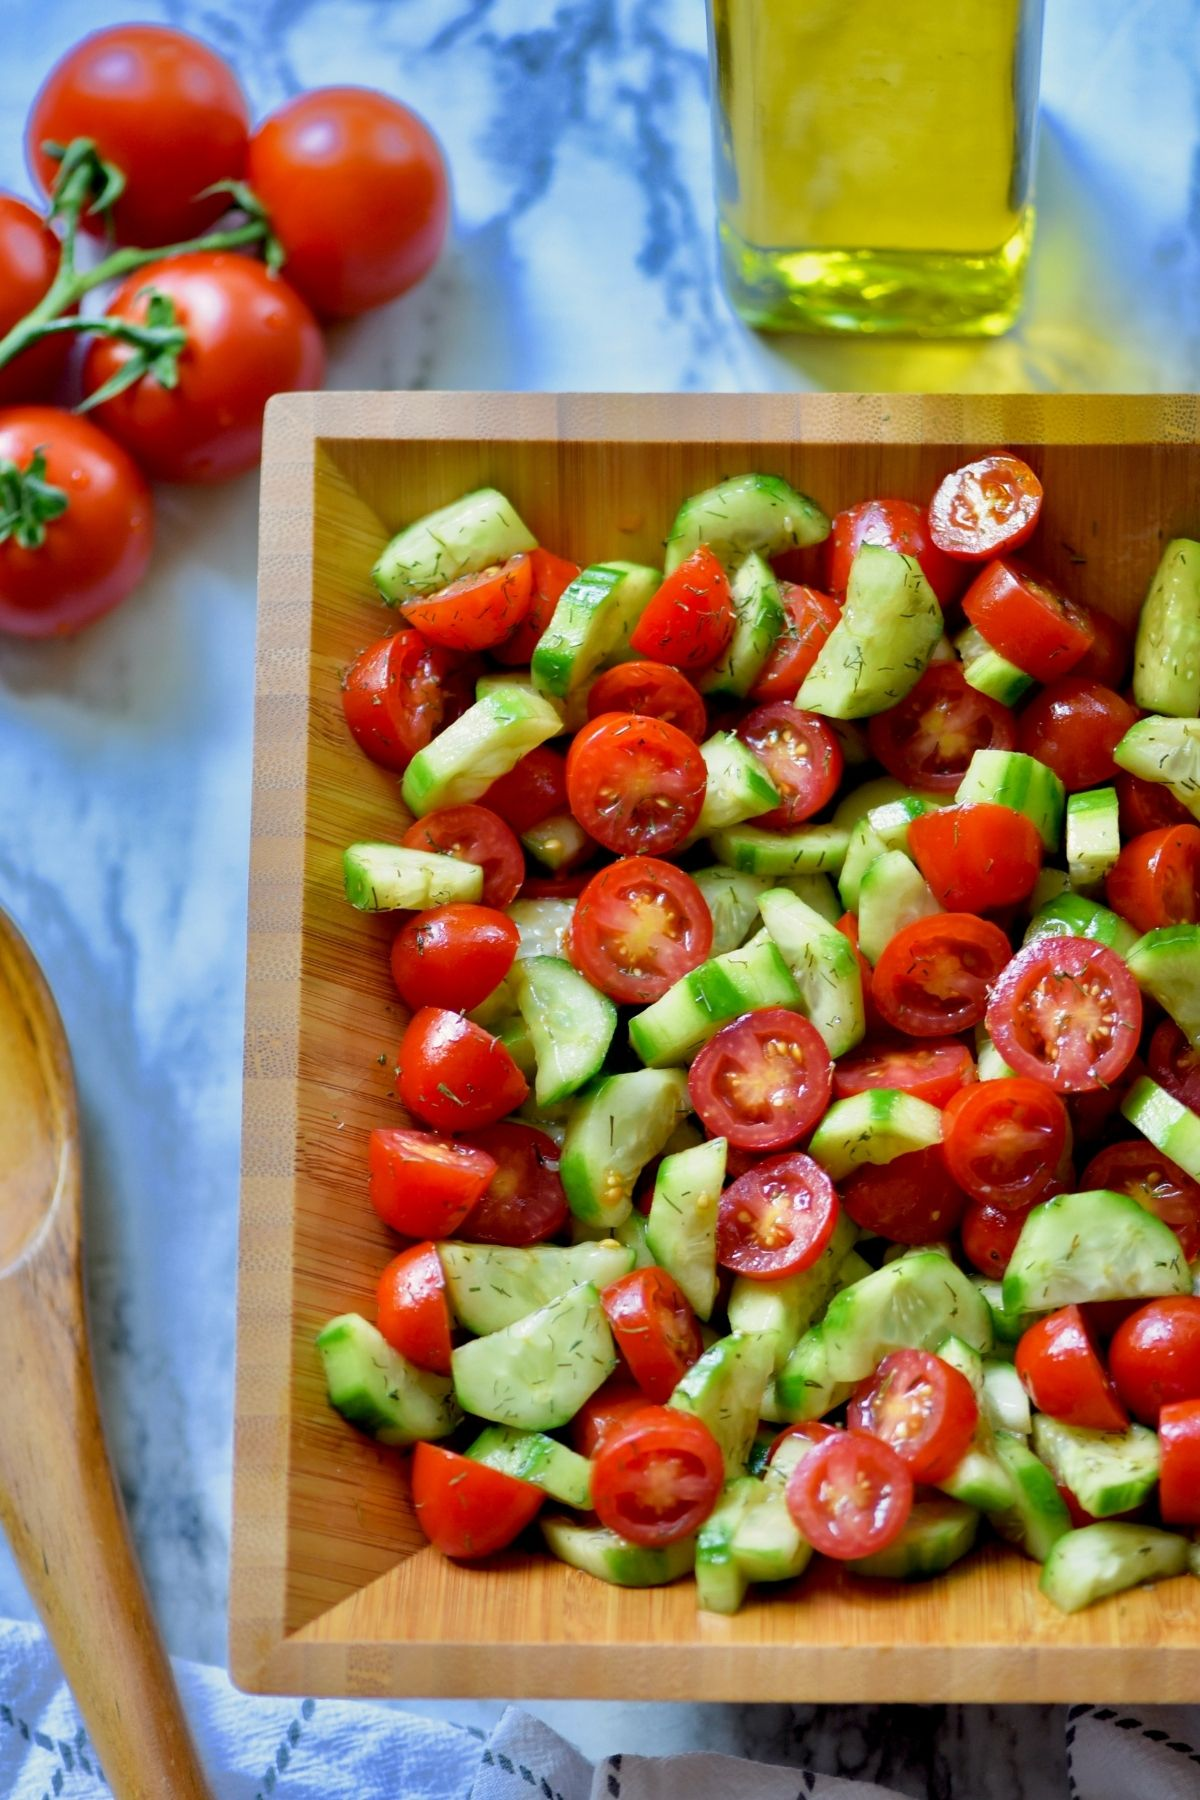 sliced tomato and cucumber salad mixed with balsamic vinegar and dill in a brown wooden bowl